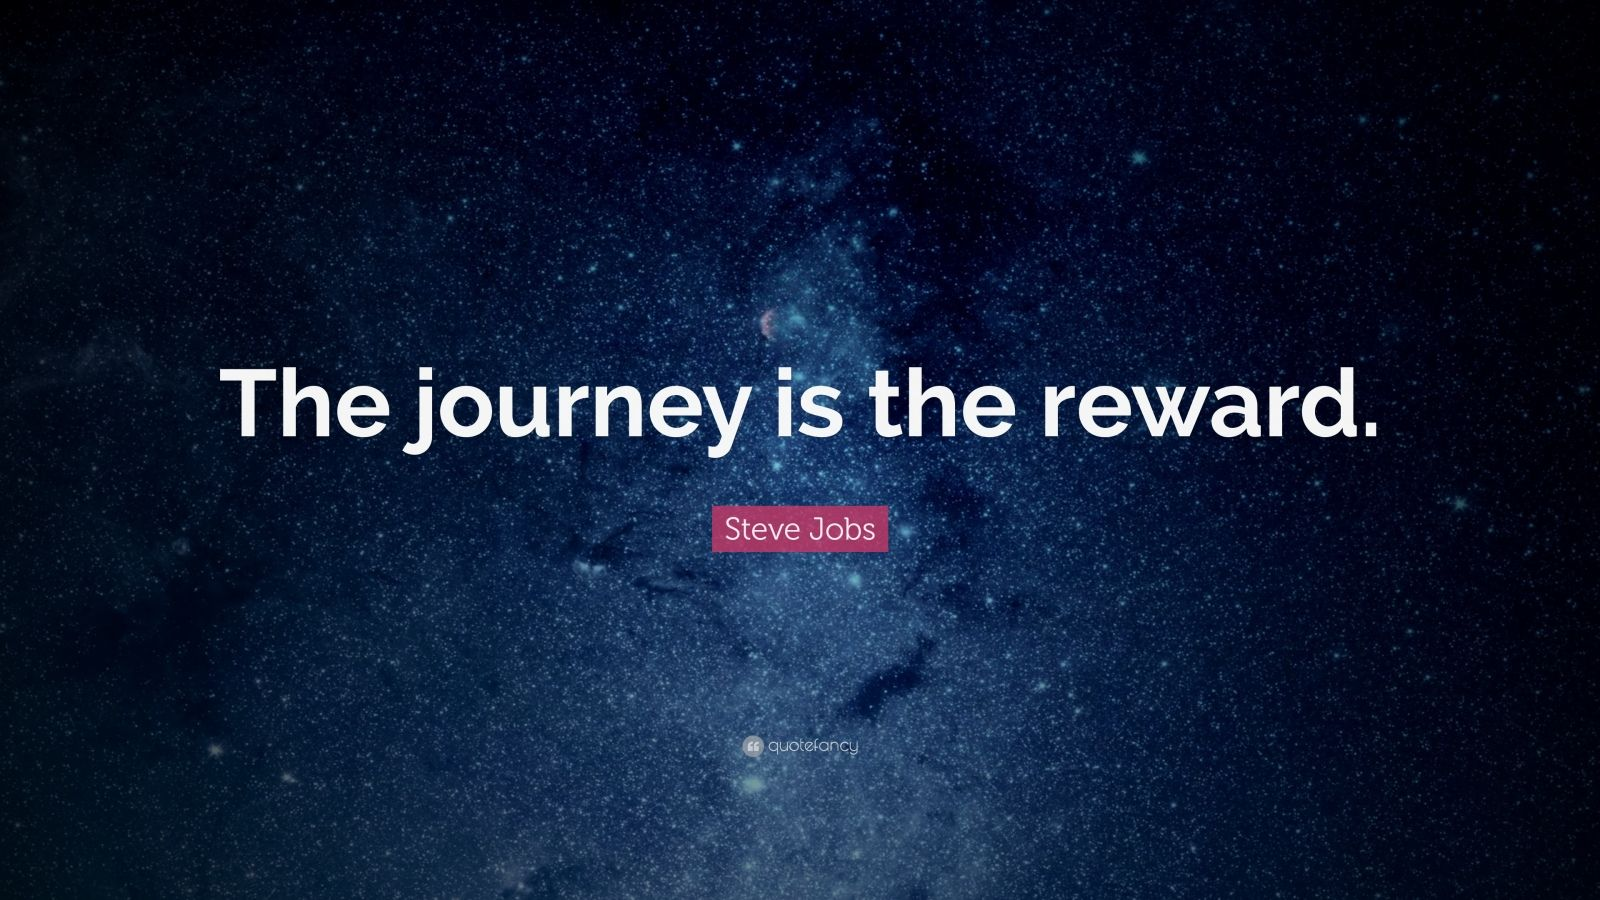 journey is the reward